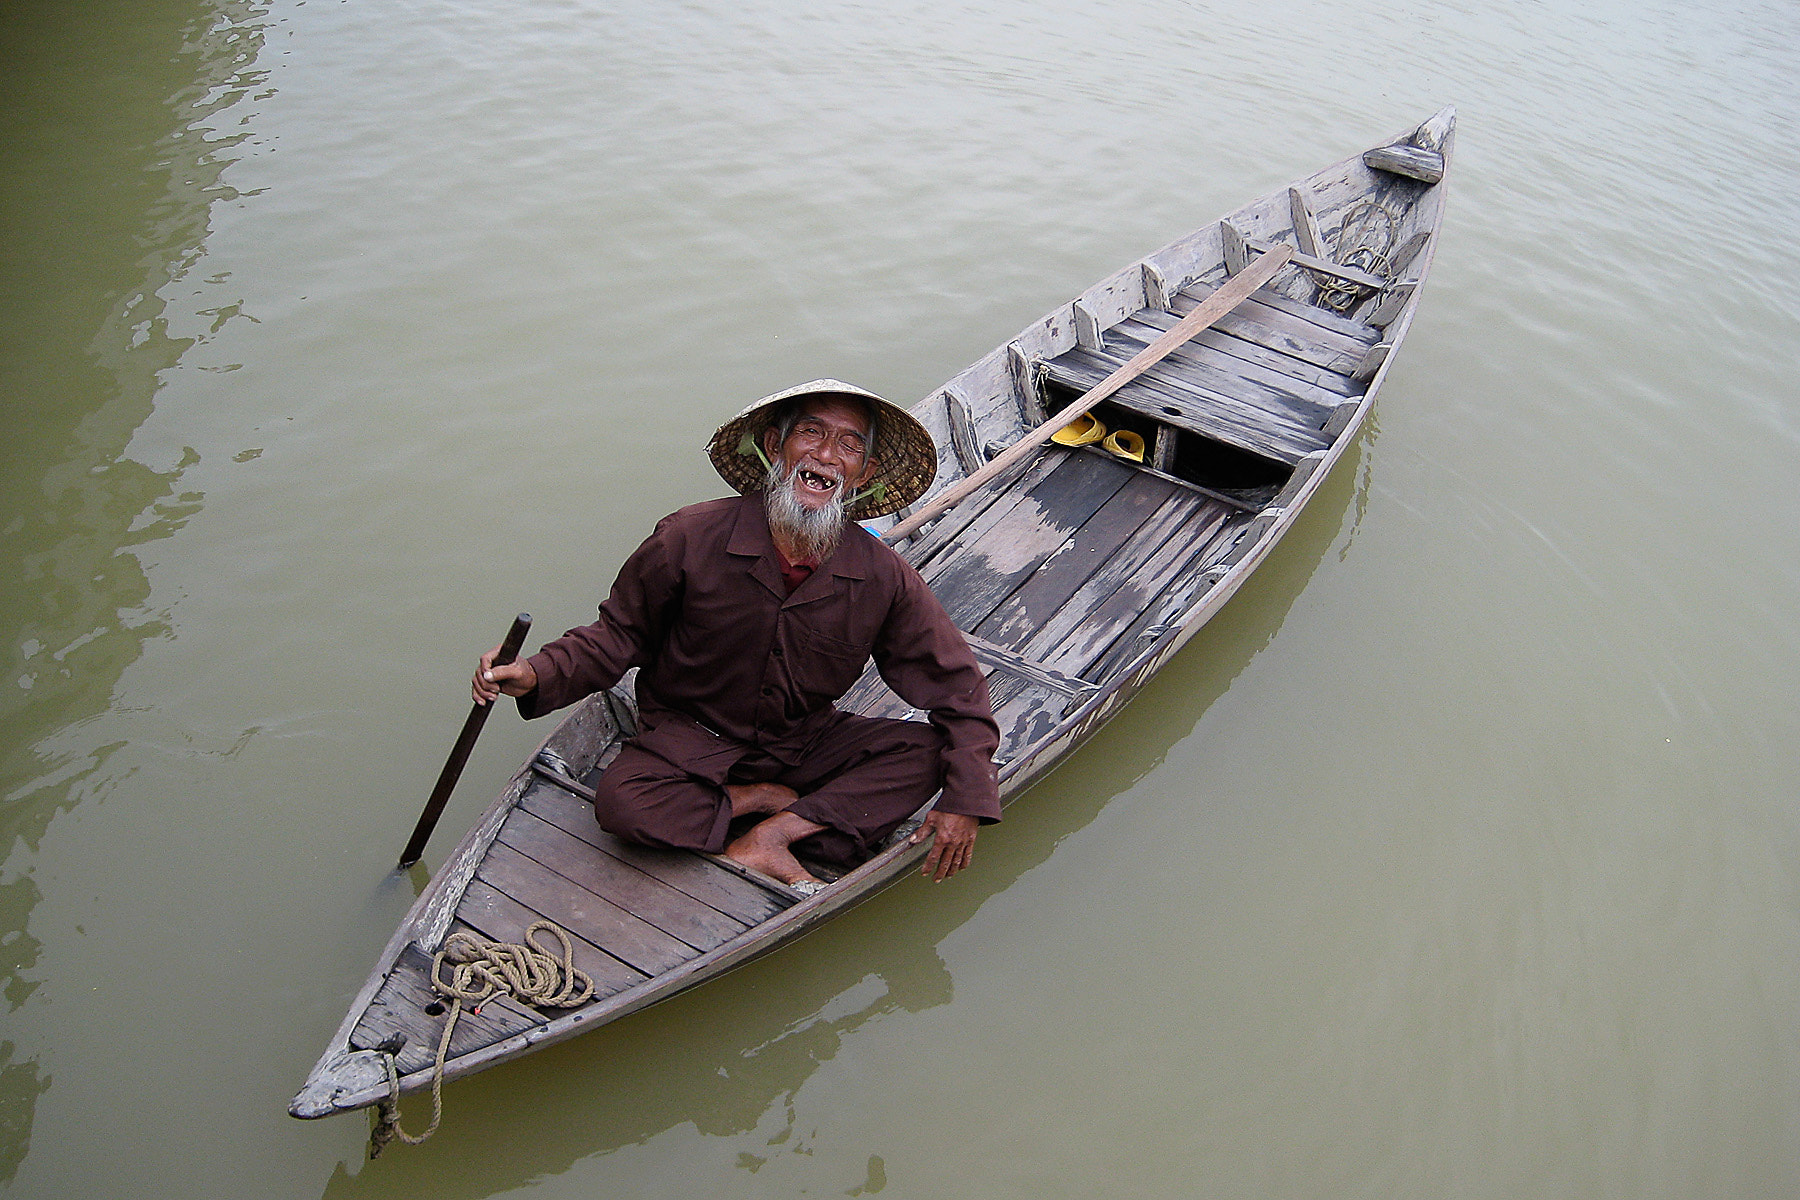 Photograph Old Man in Boat by Mark Reibman on 500px